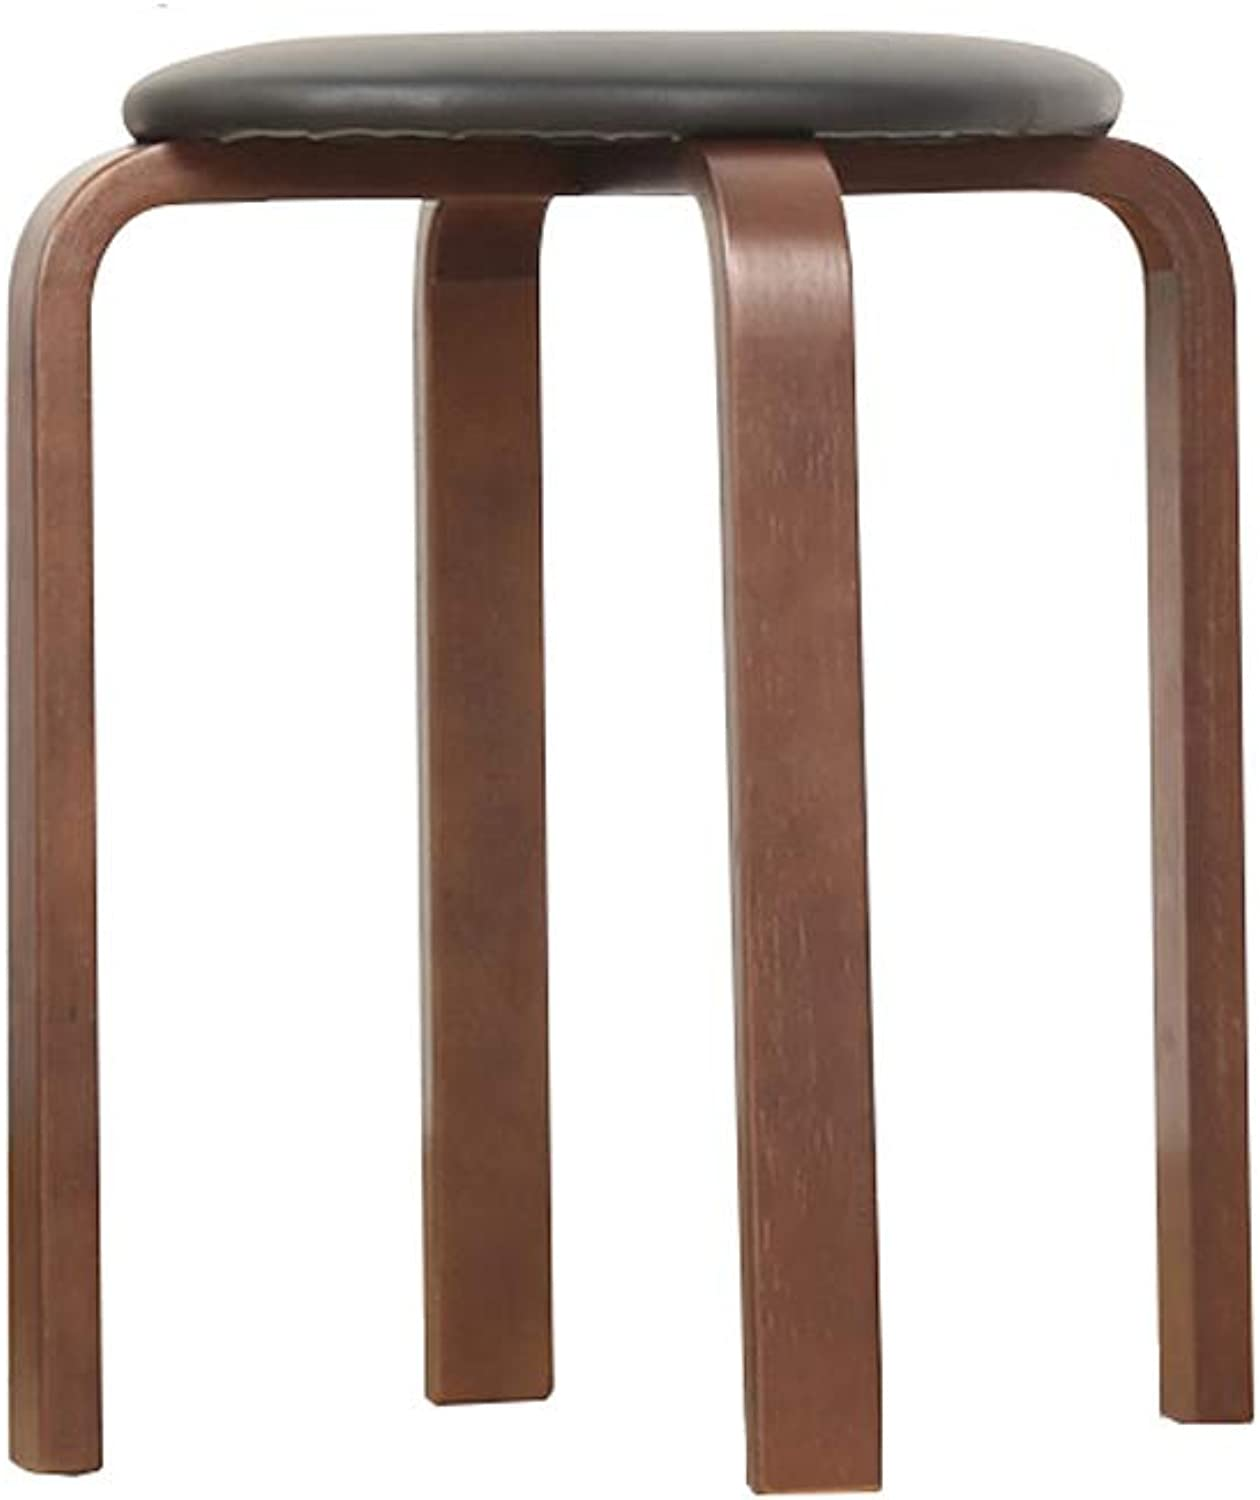 CQ Solid Wood Stool Stool Creative Stool Home Adult Wood Small Bench Modern Minimalist Wooden Stool (color   Black)